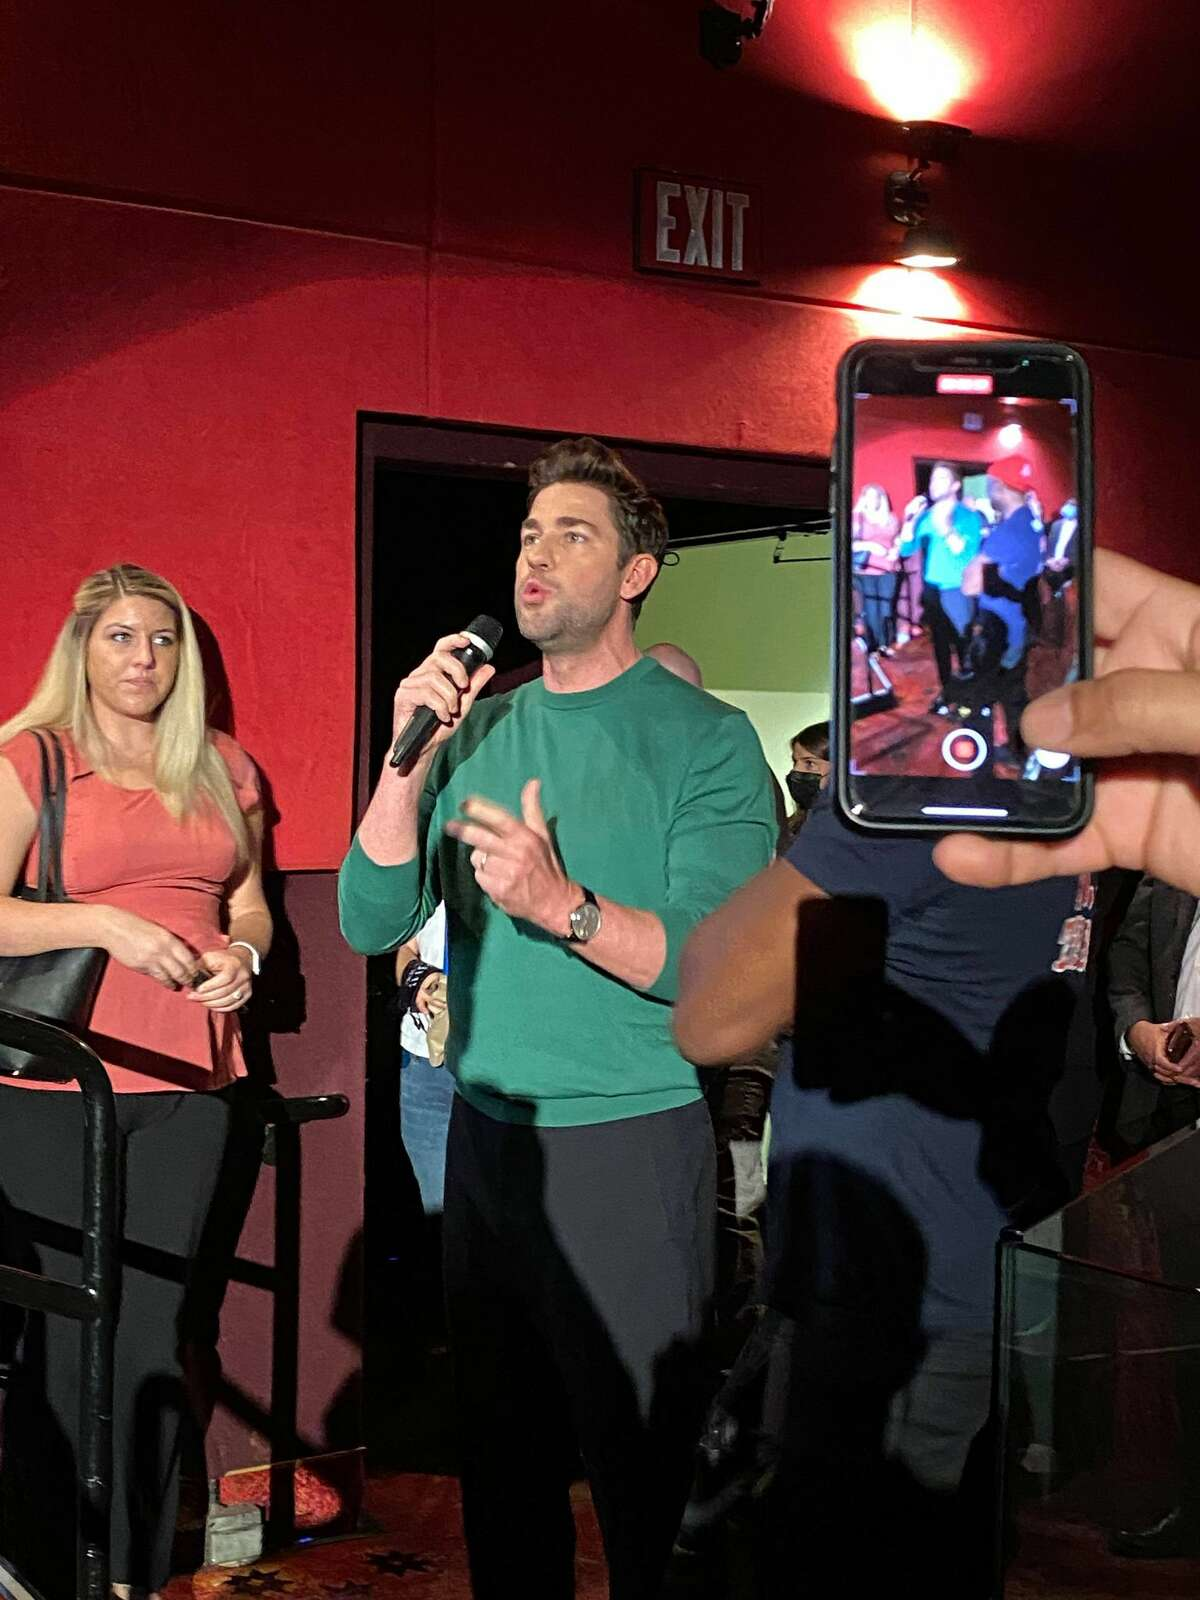 Actor and producer John Krasinski was spotted Friday night at Houston's Edwards Marqe for the opening night of the new movie he directed and acts in,